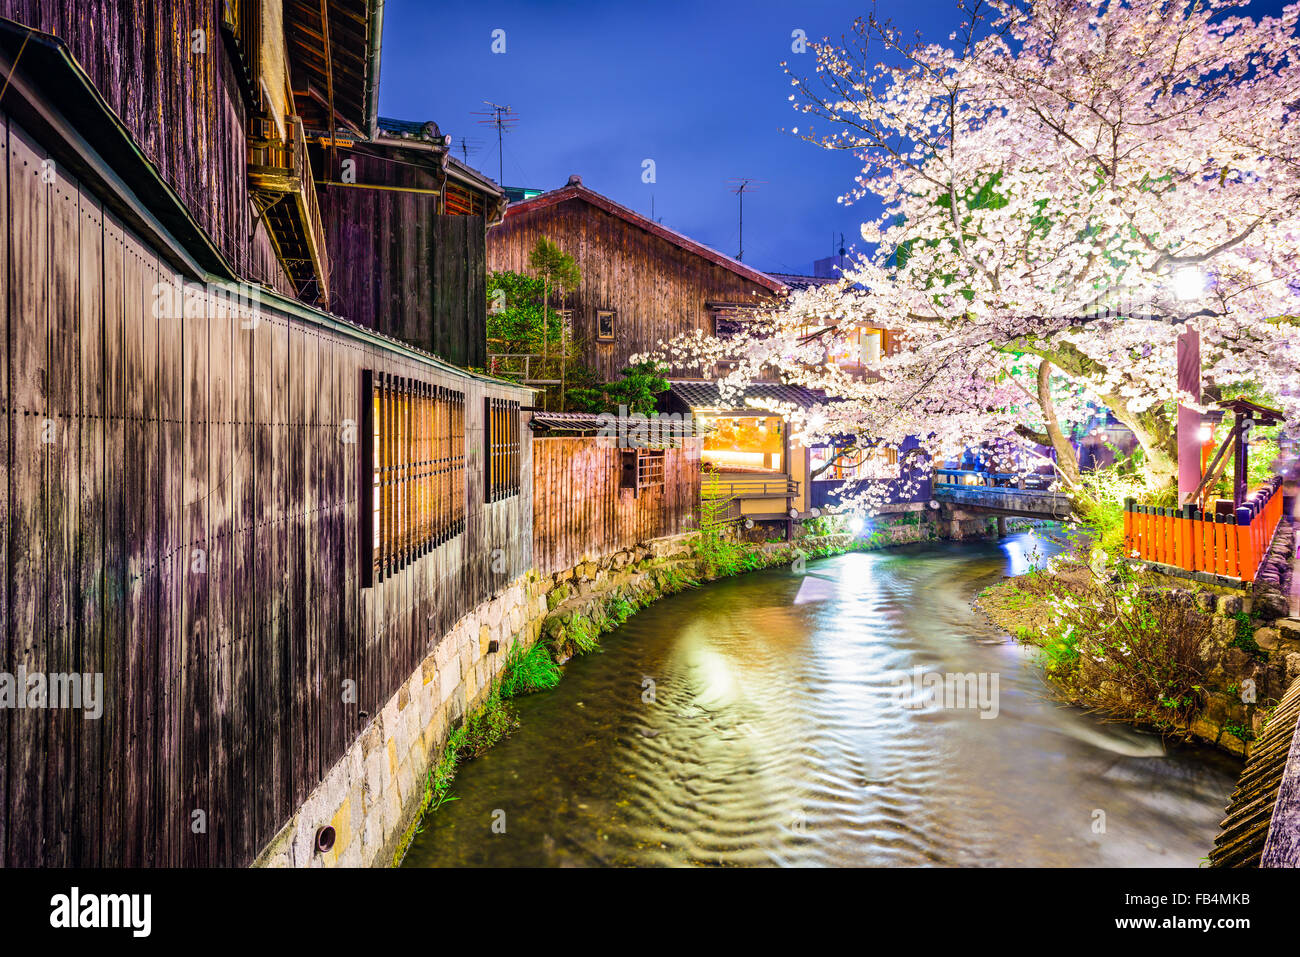 Kyoto, Japan at the Shirakawa River in the Gion District during the spring cherry blosson season. - Stock Image